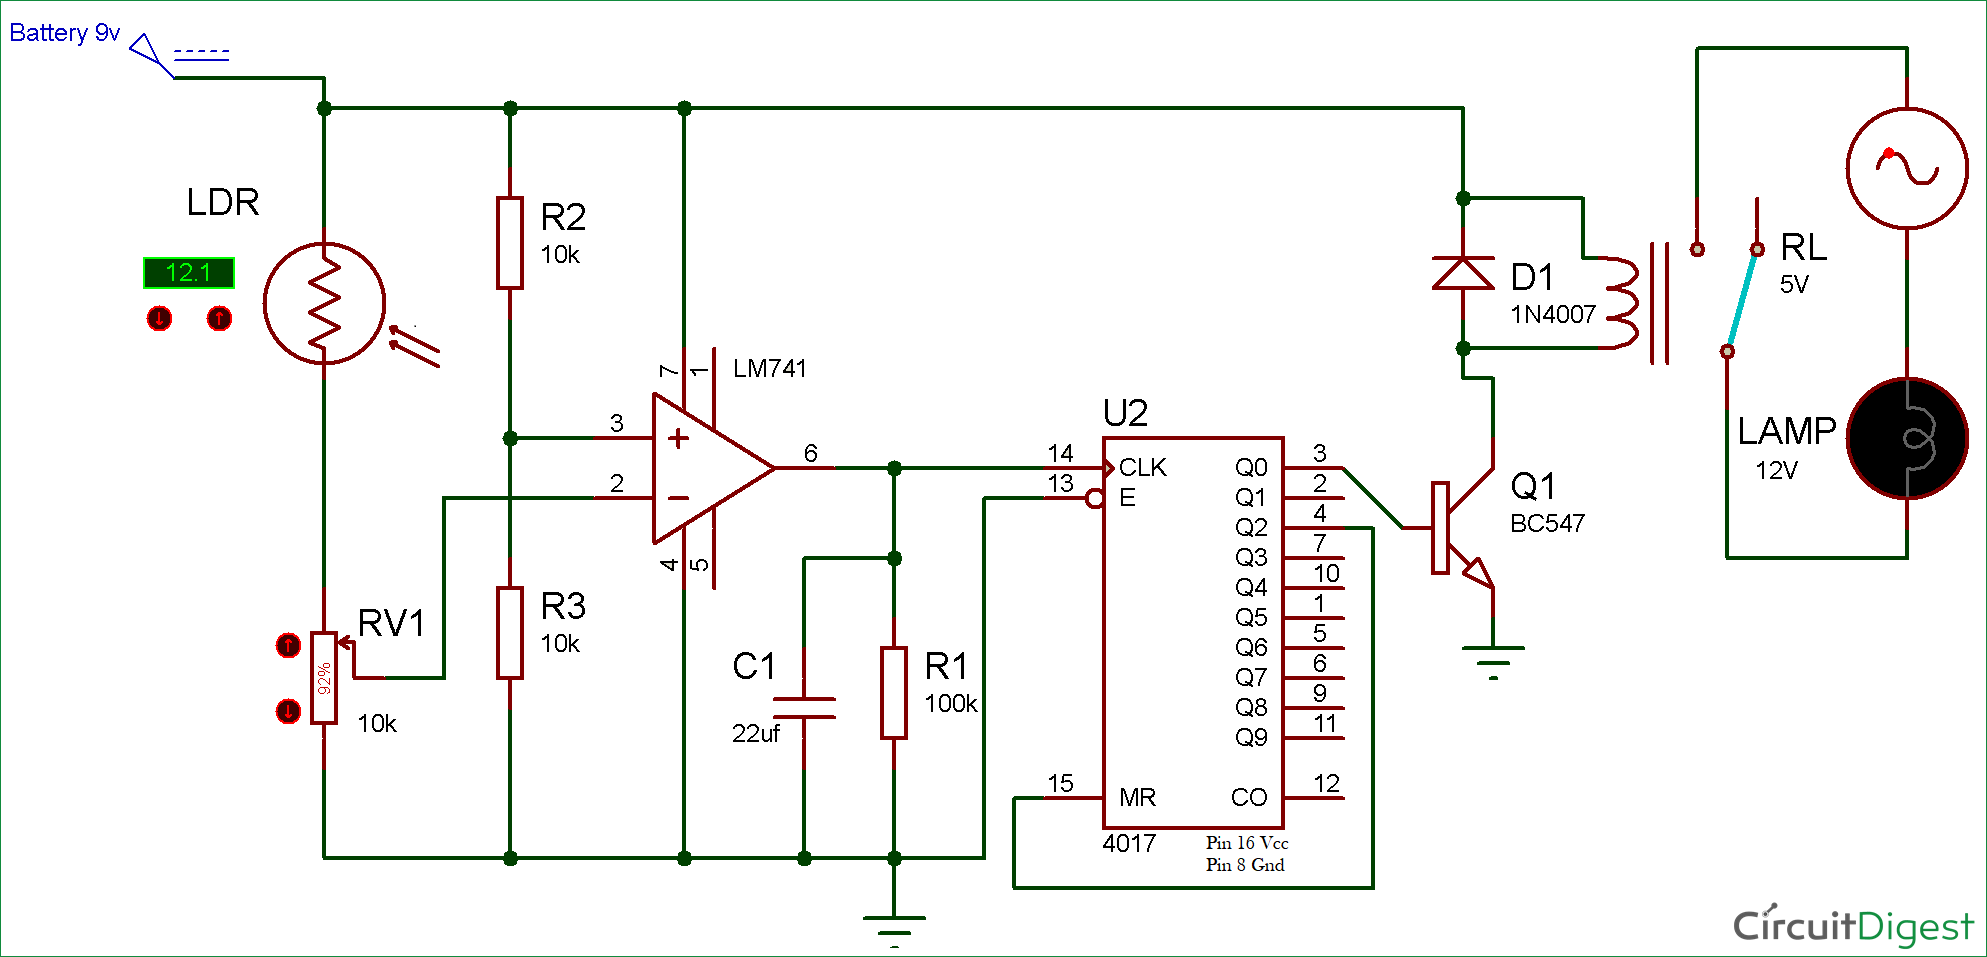 Pleasing Fire Alarm Circuit Electronic Circuits And Diagramelectronics Wiring Cloud Ymoonsalvmohammedshrineorg